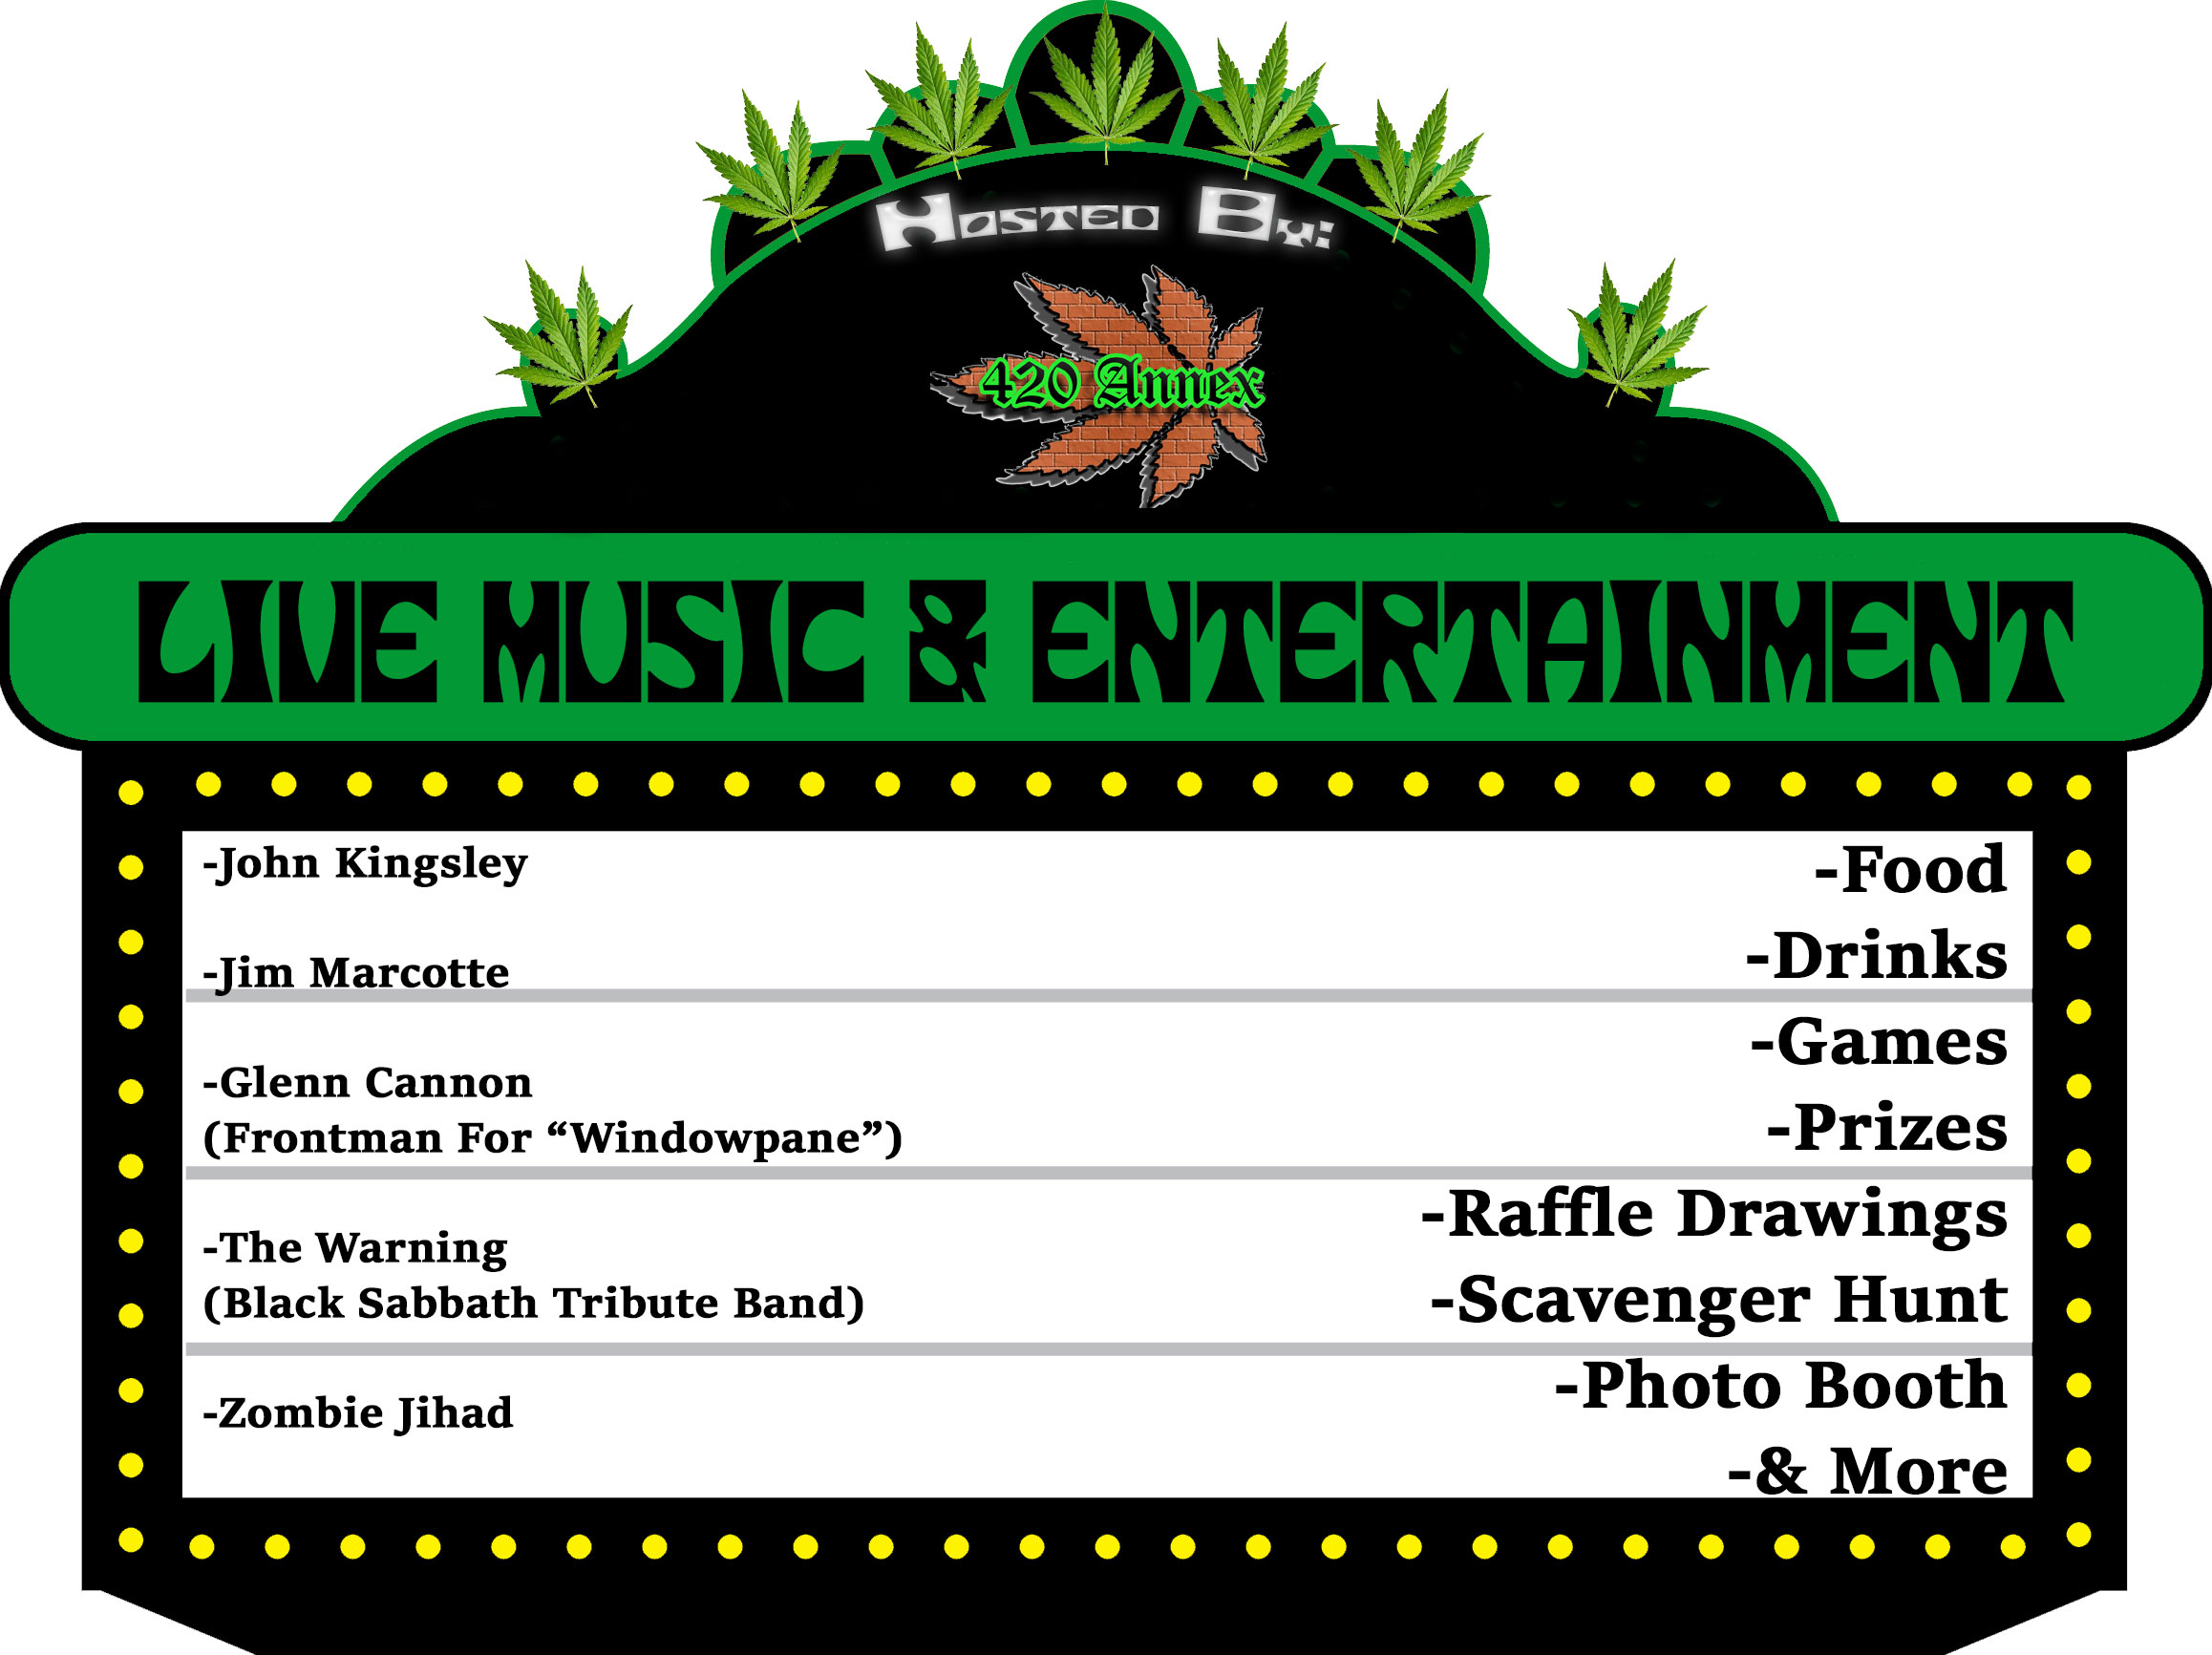 The 420 Annex's 2019 4/20 Fair is the biggest and best Kitsap Cannabis Community event in our area of Washington! The 4/20 Fair will have lots of entertainment such as live music, food, drinks, games, prizes, raffle drawings, scavenger hunts, photo booths, and more. This event is free to attend. Join us and the rest of your Best Buds for this super fun International Cannabis Culture Holiday!